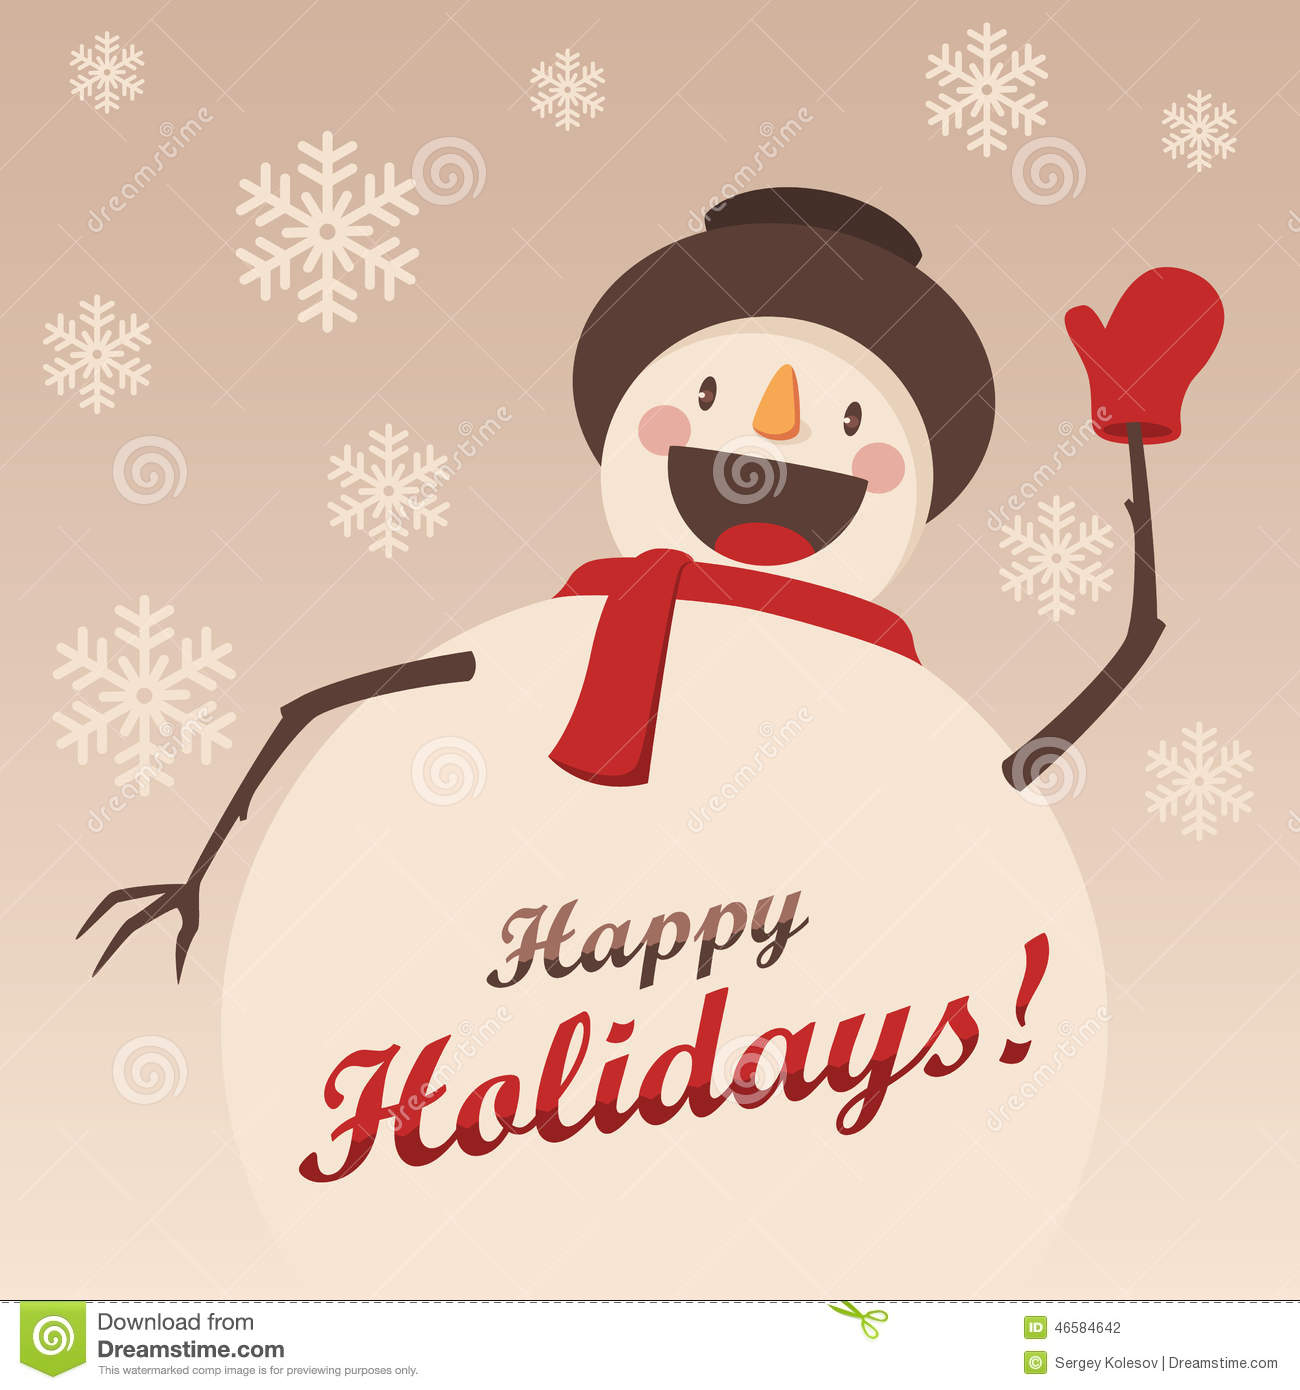 Happy Snowman greets you. Christmas background with snowflakes.